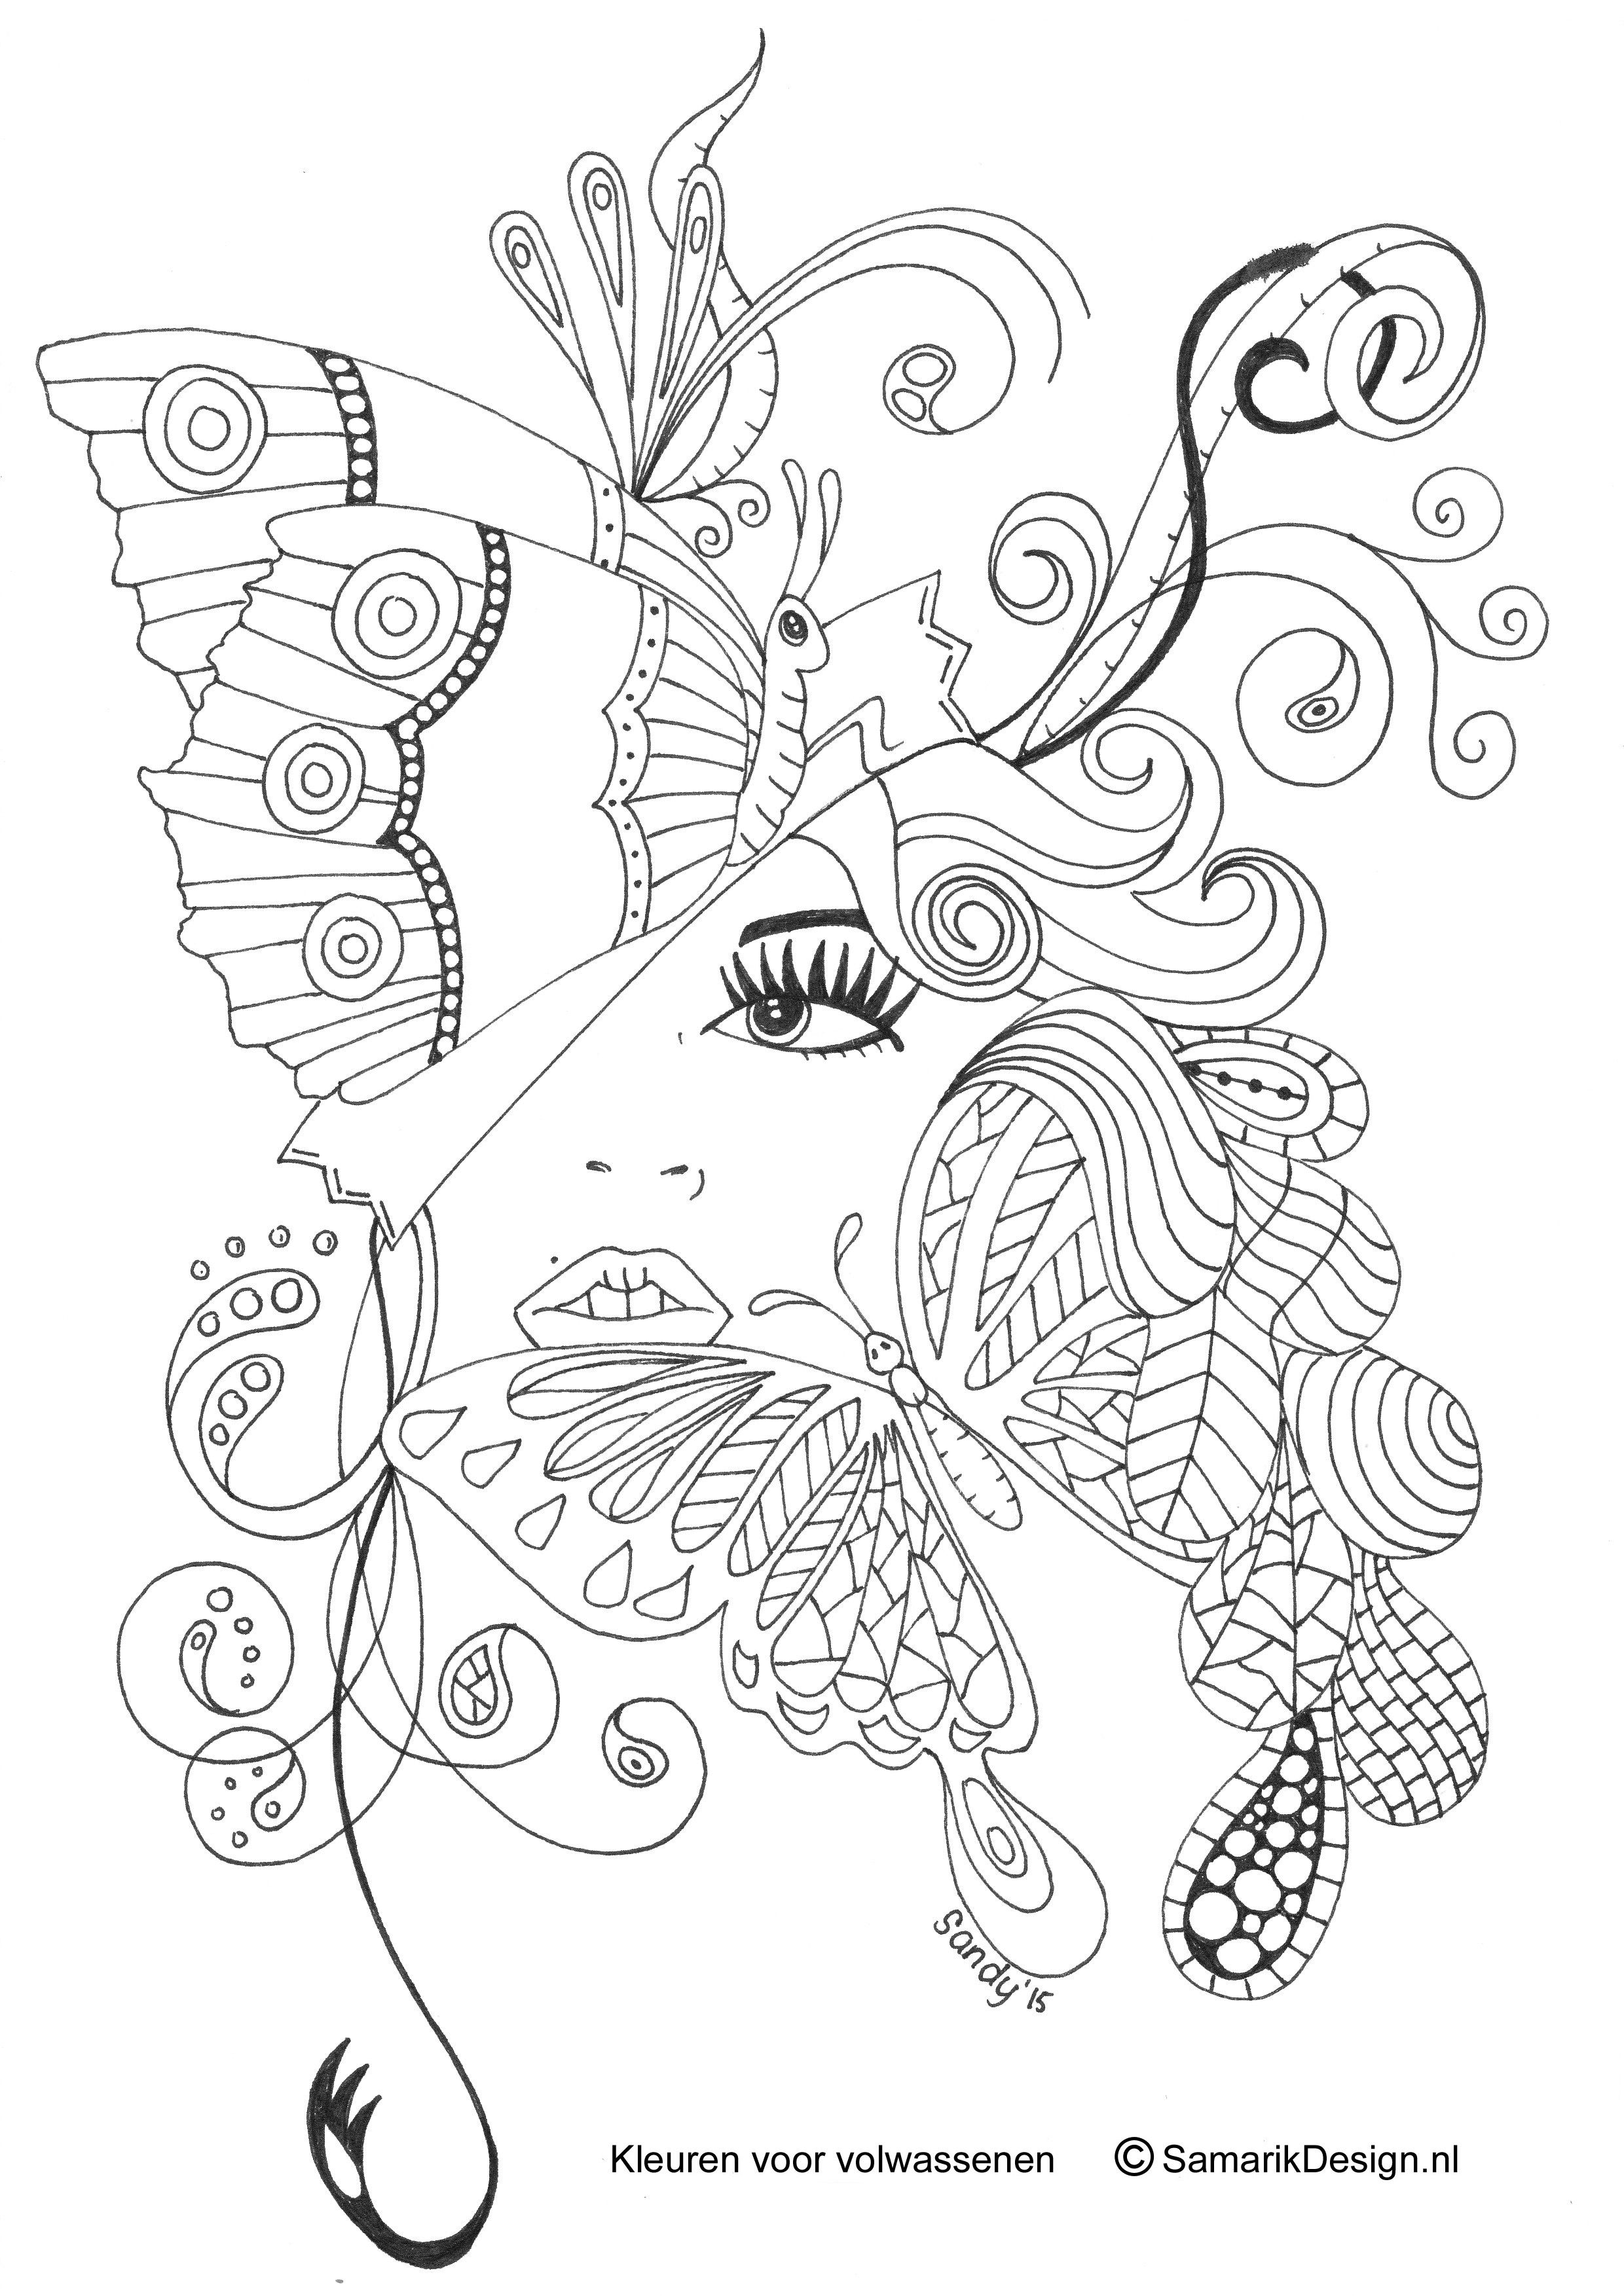 amazing coloring pages Butterfly Papillon Mariposas Vlinders Wings Graceful Amazing  amazing coloring pages